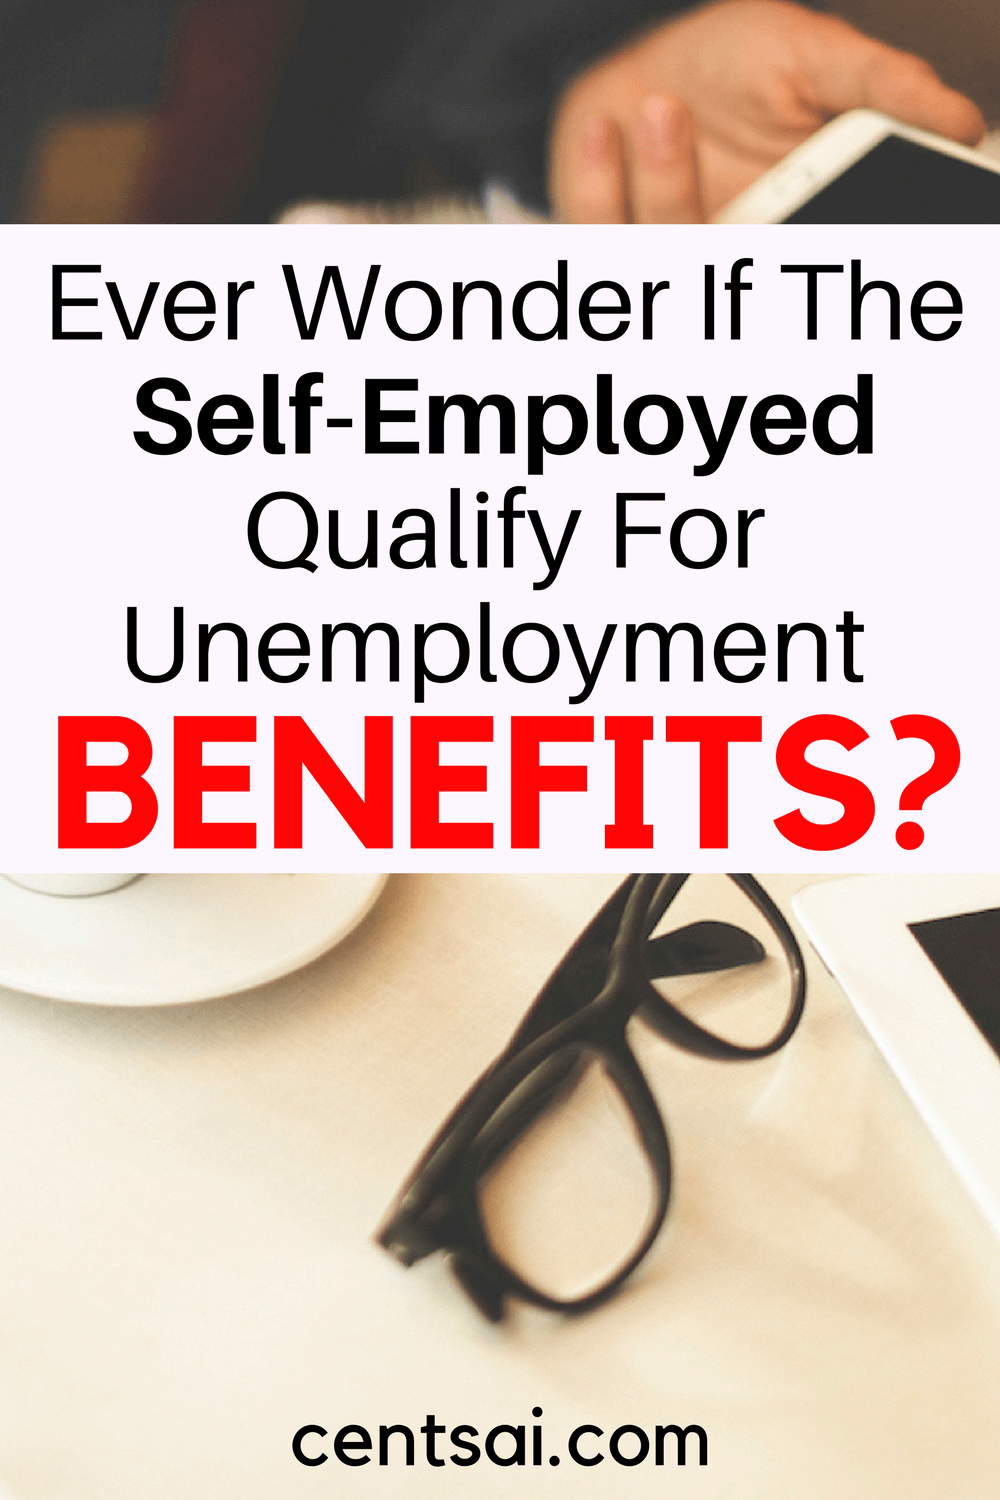 Ever Wonder If The Self-Employed Qualify For Unemployment Benefits? Even if you can't get employment insurance benefits, there are ways you can protect yourself when you're self-employed.